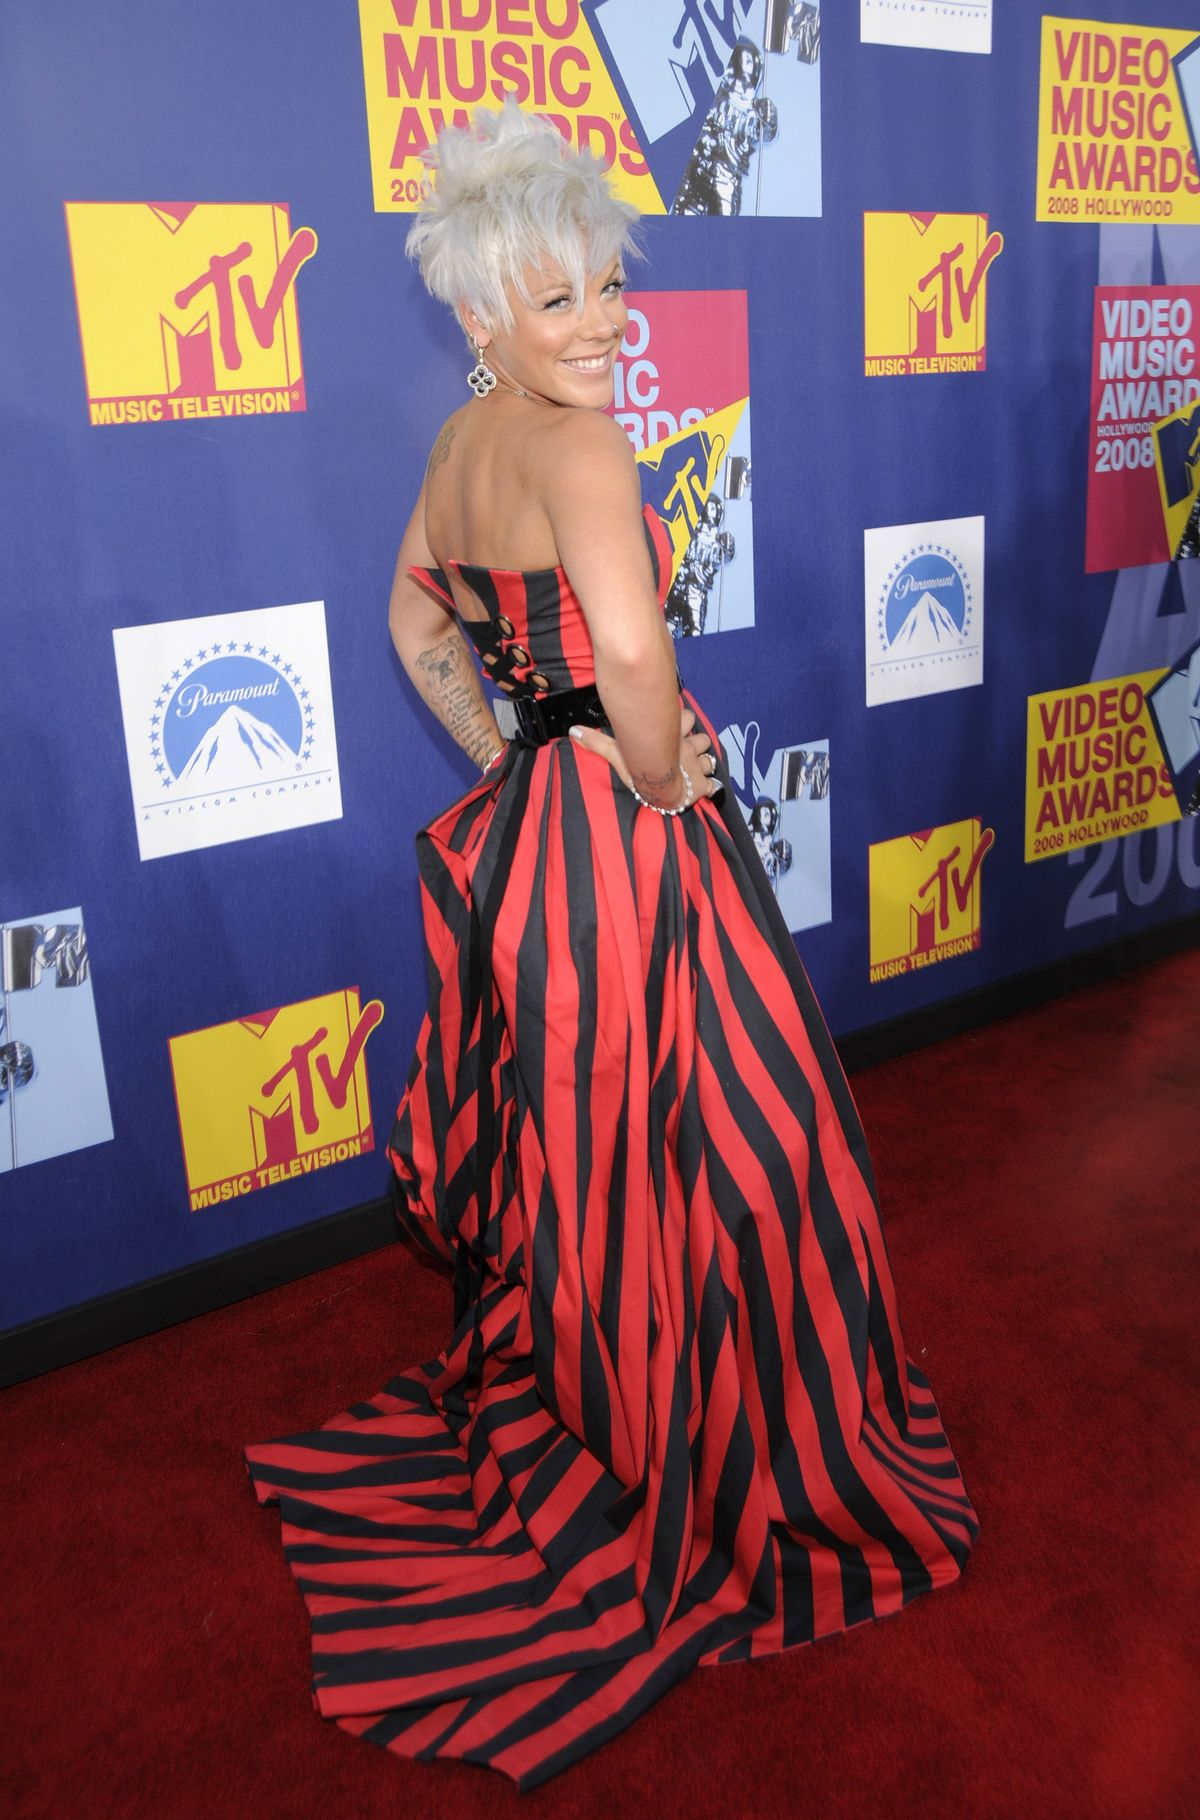 LOS ANGELES, CA - SEPTEMBER 07:  Pink arrives on the red carpet of the 2008 MTV Video Music Awards at Paramount Pictures Studios on September 7, 2008 in Los Angeles, California.  (Photo by Kevin Mazur/WireImage)